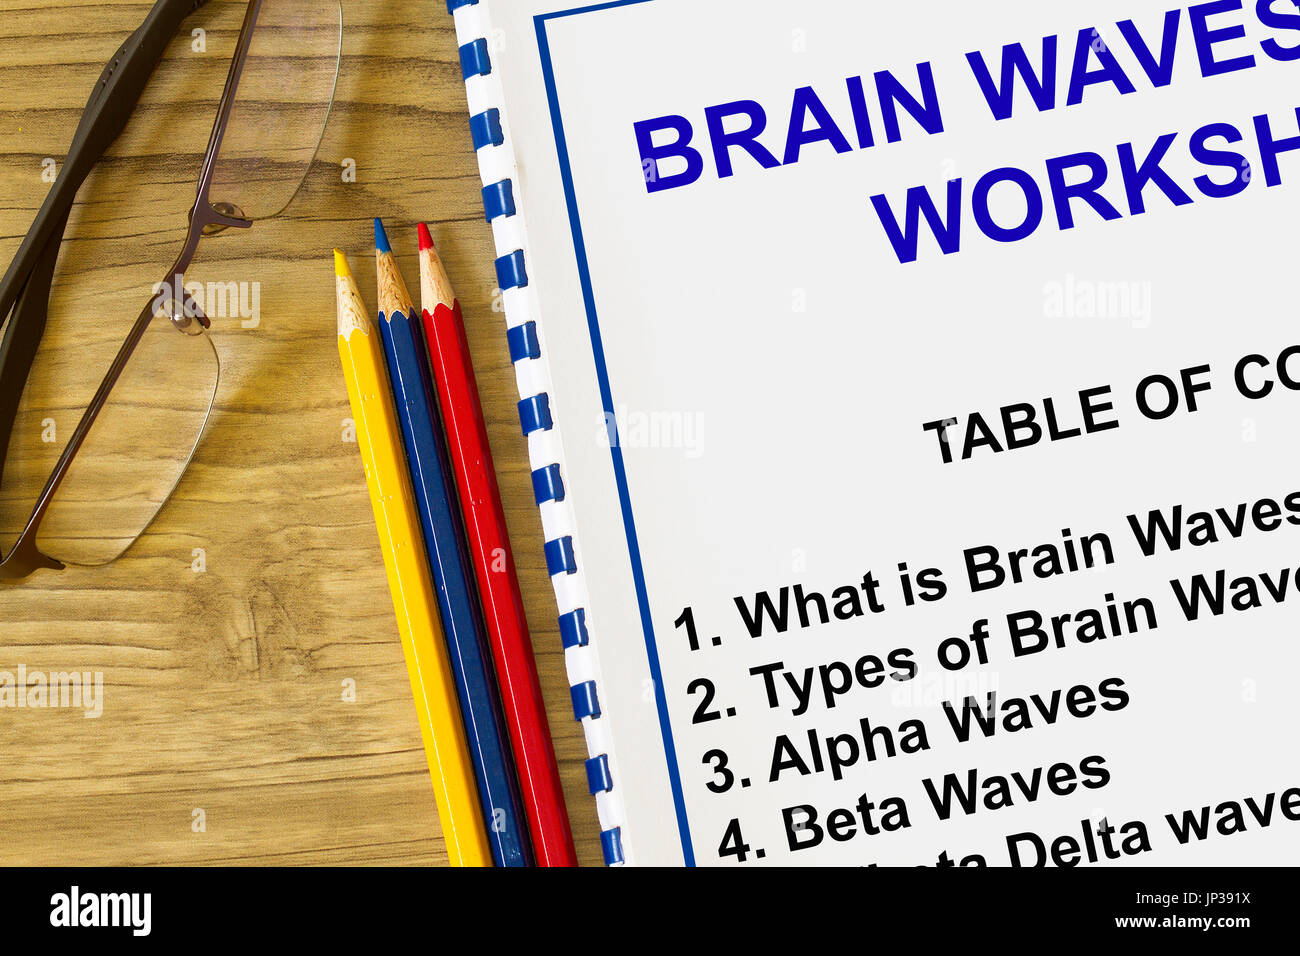 Brain waves concept- many uses in the creative visualization seminar. - Stock Image